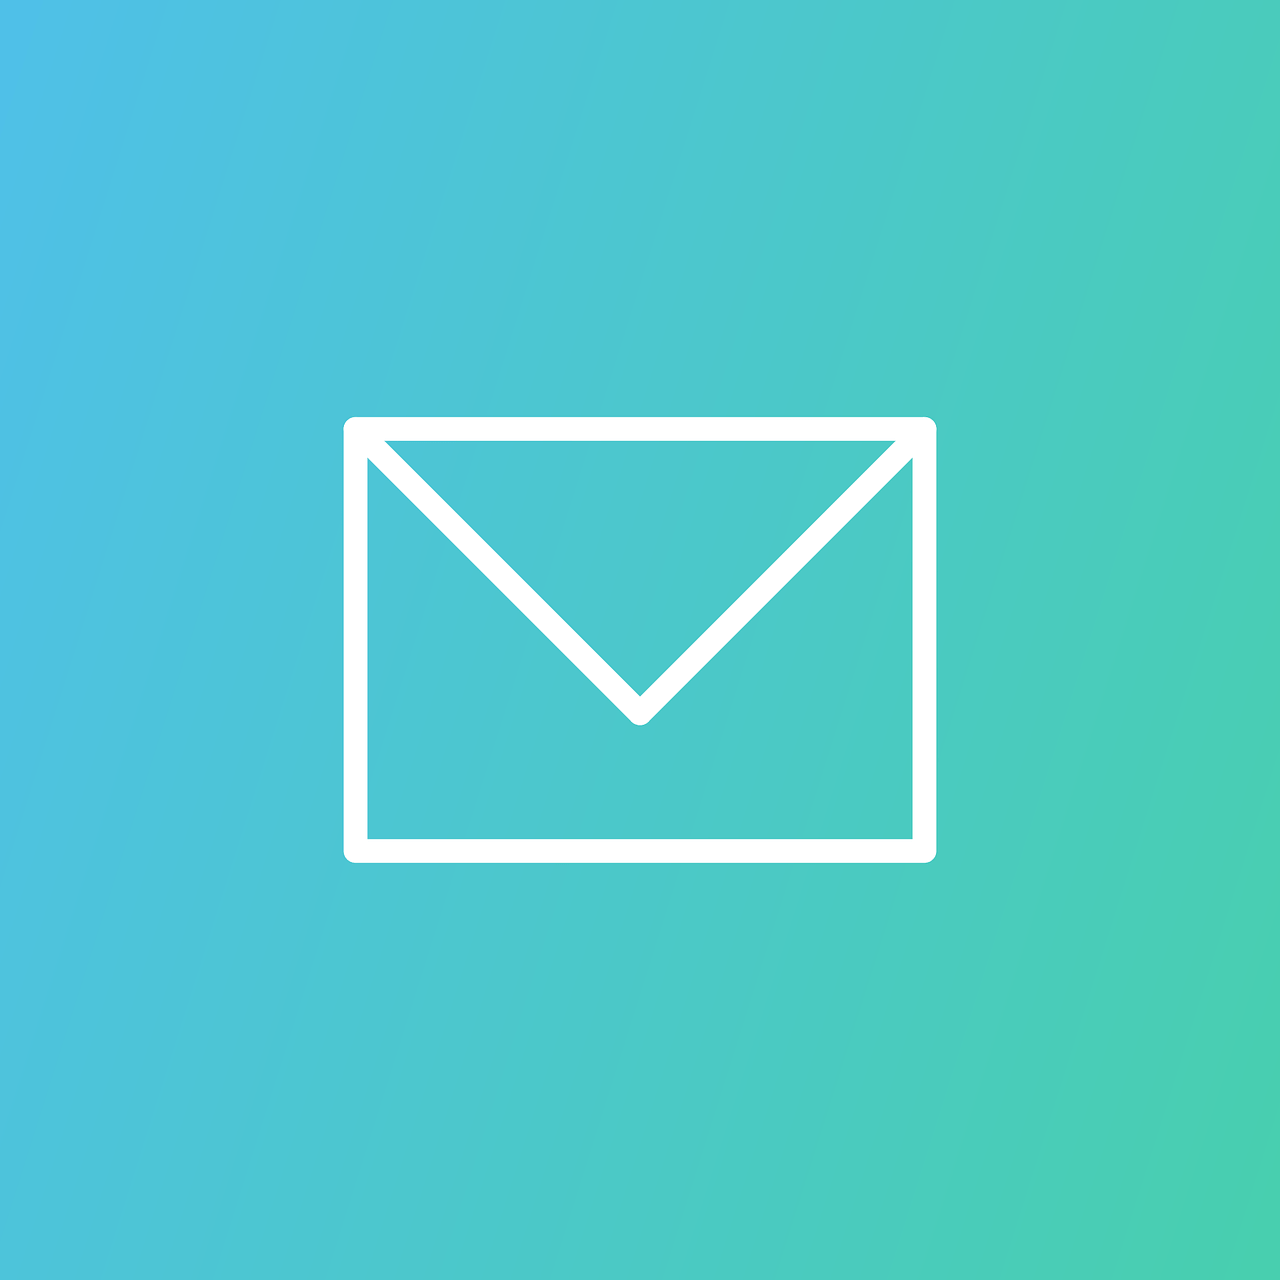 letter, e-mail, contact